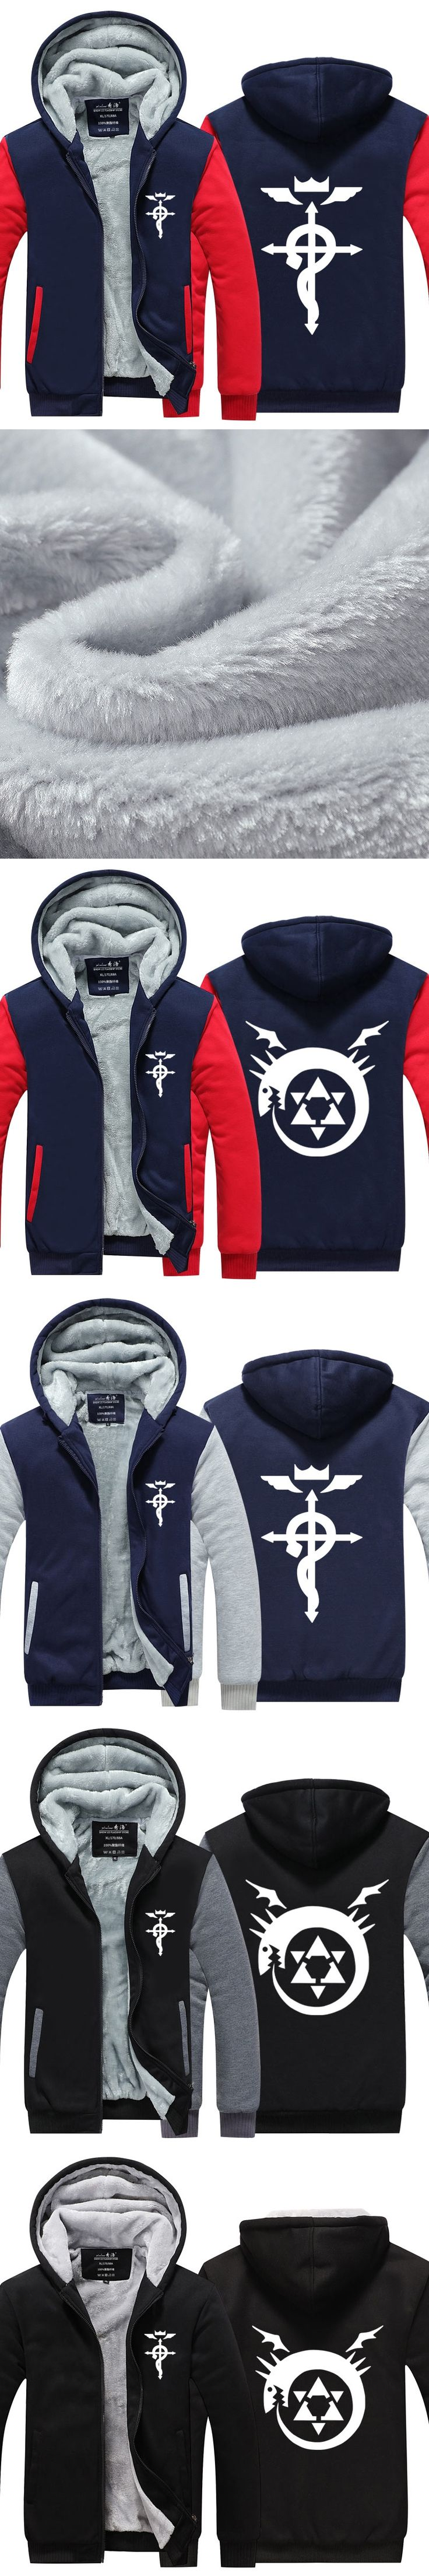 Men Anime Fullmetal Alchemist Print Mens Hoodies Zipper Hoodie Cotton Jacket Coat Winter Skate Men's Fleece Sweatshirt Tracksuit